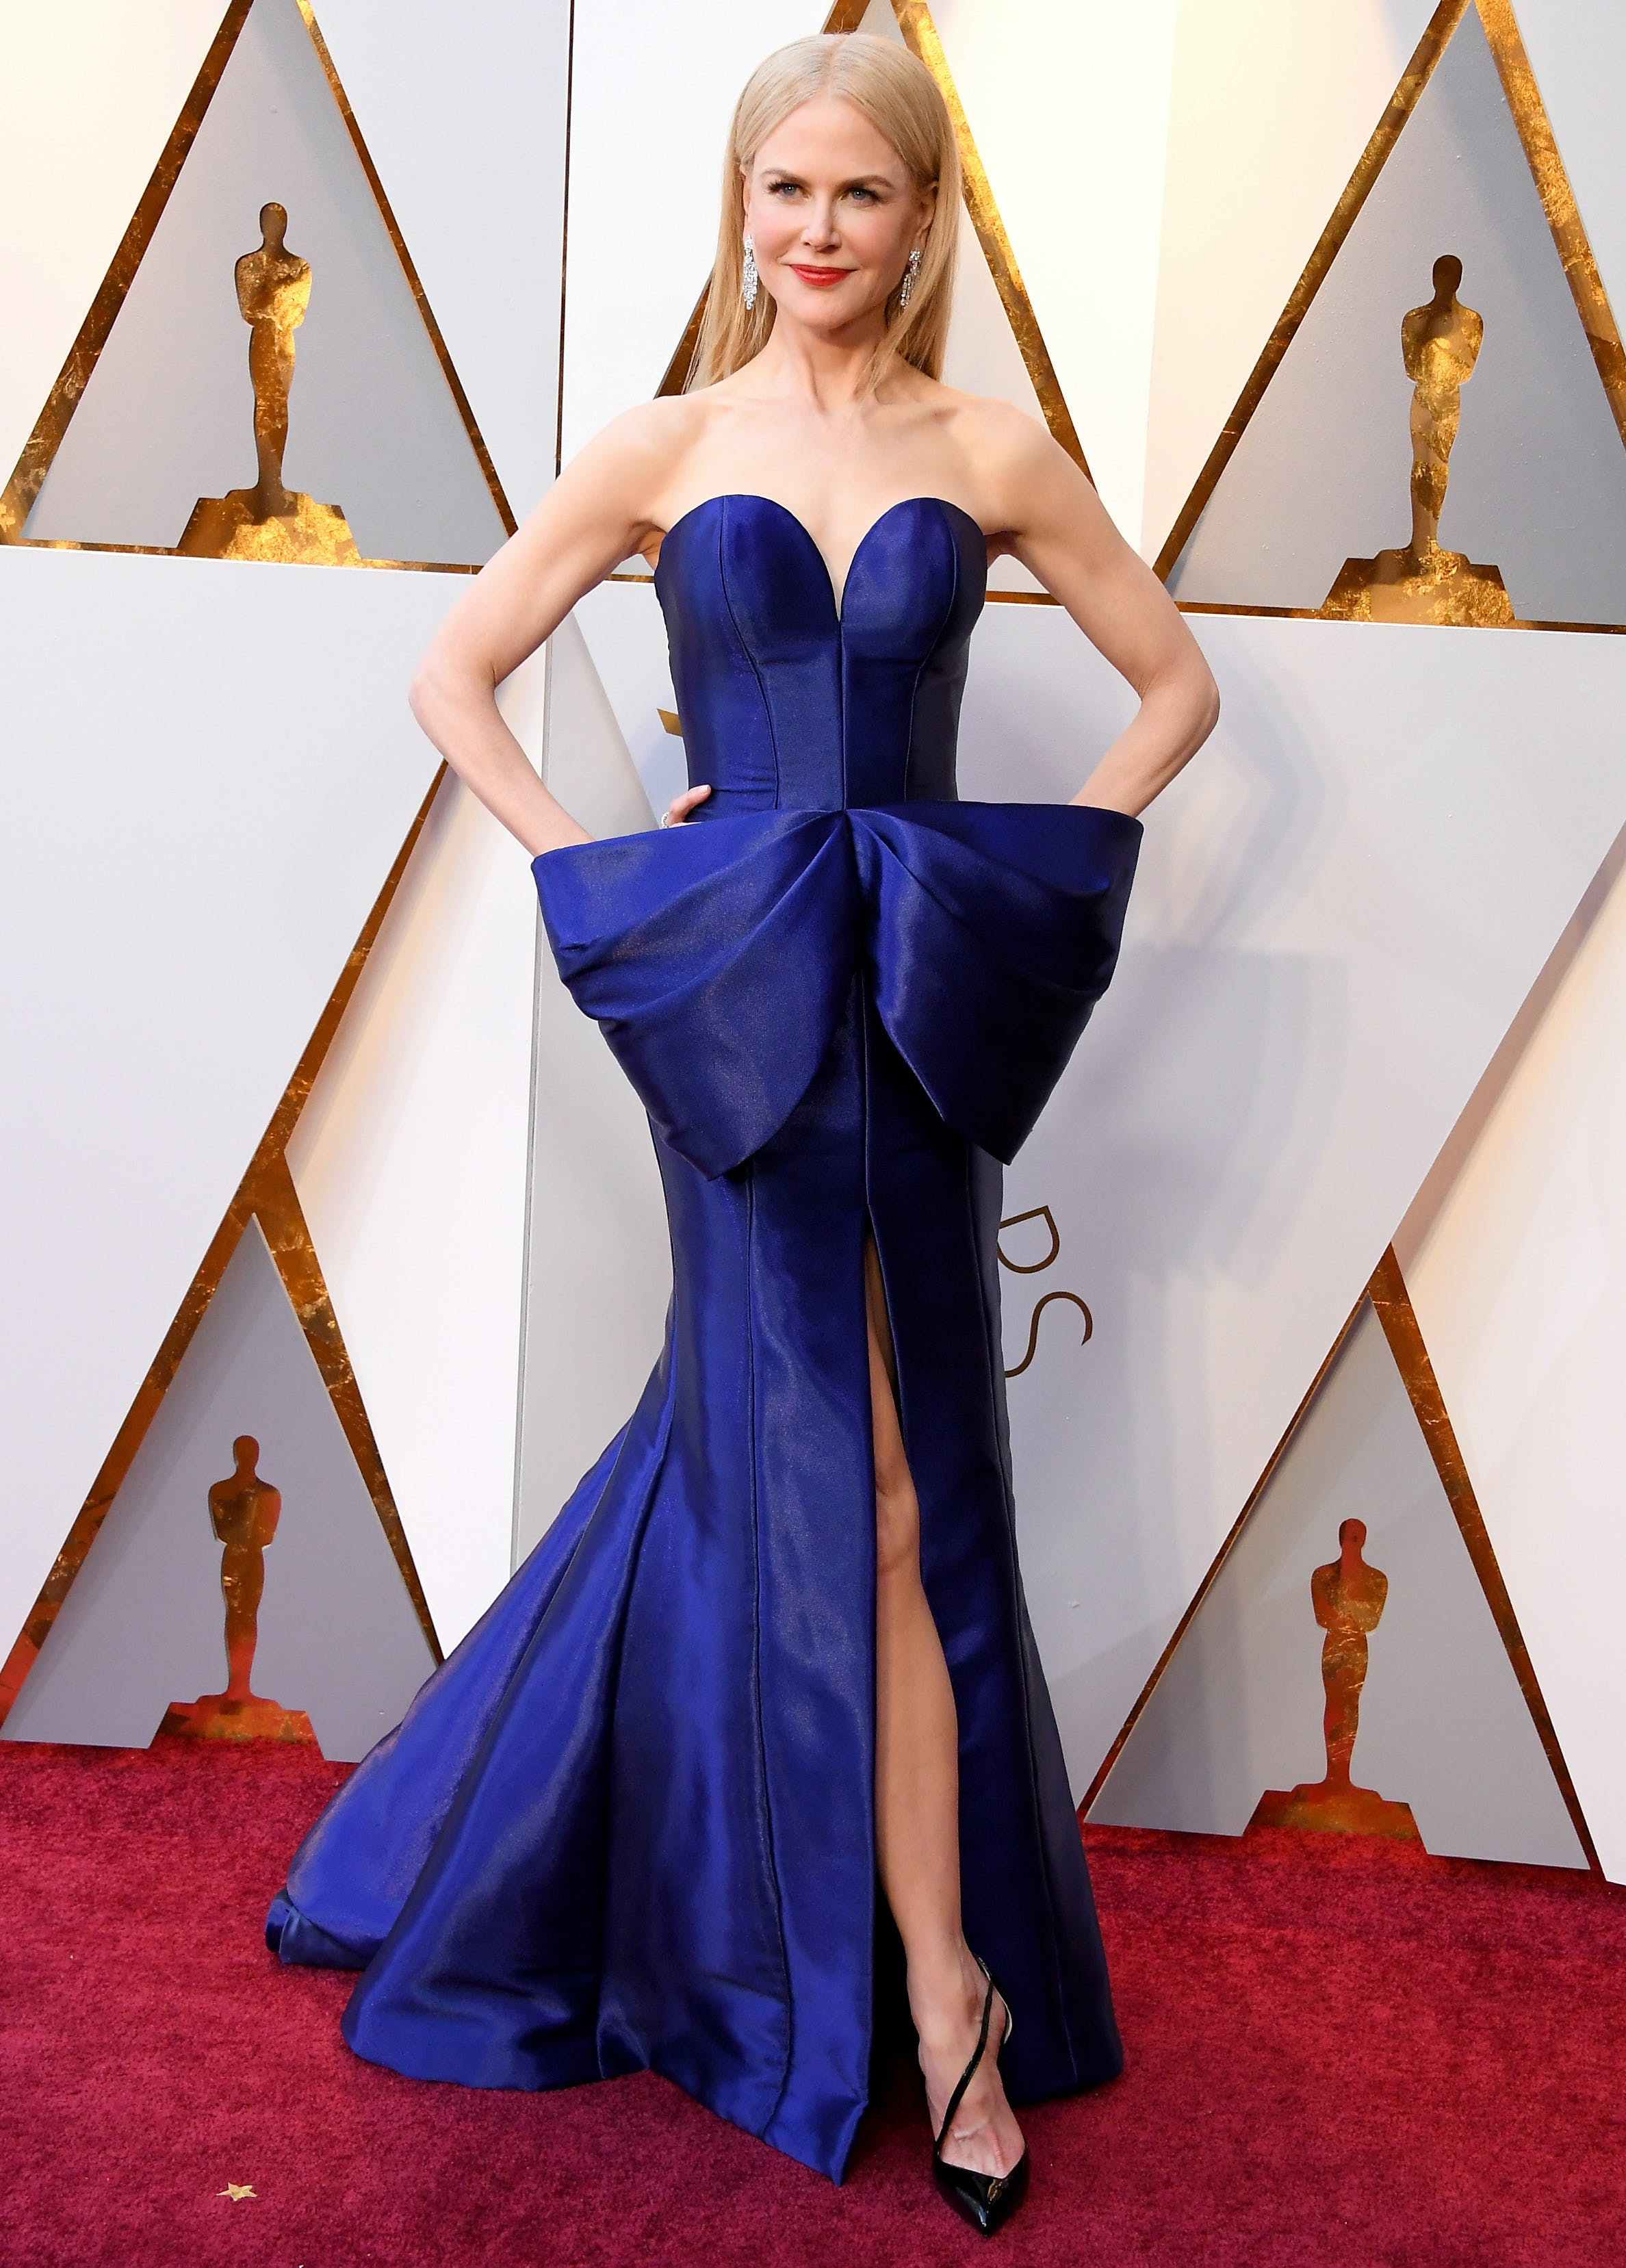 Nicole Kidman at the 2018 Oscars